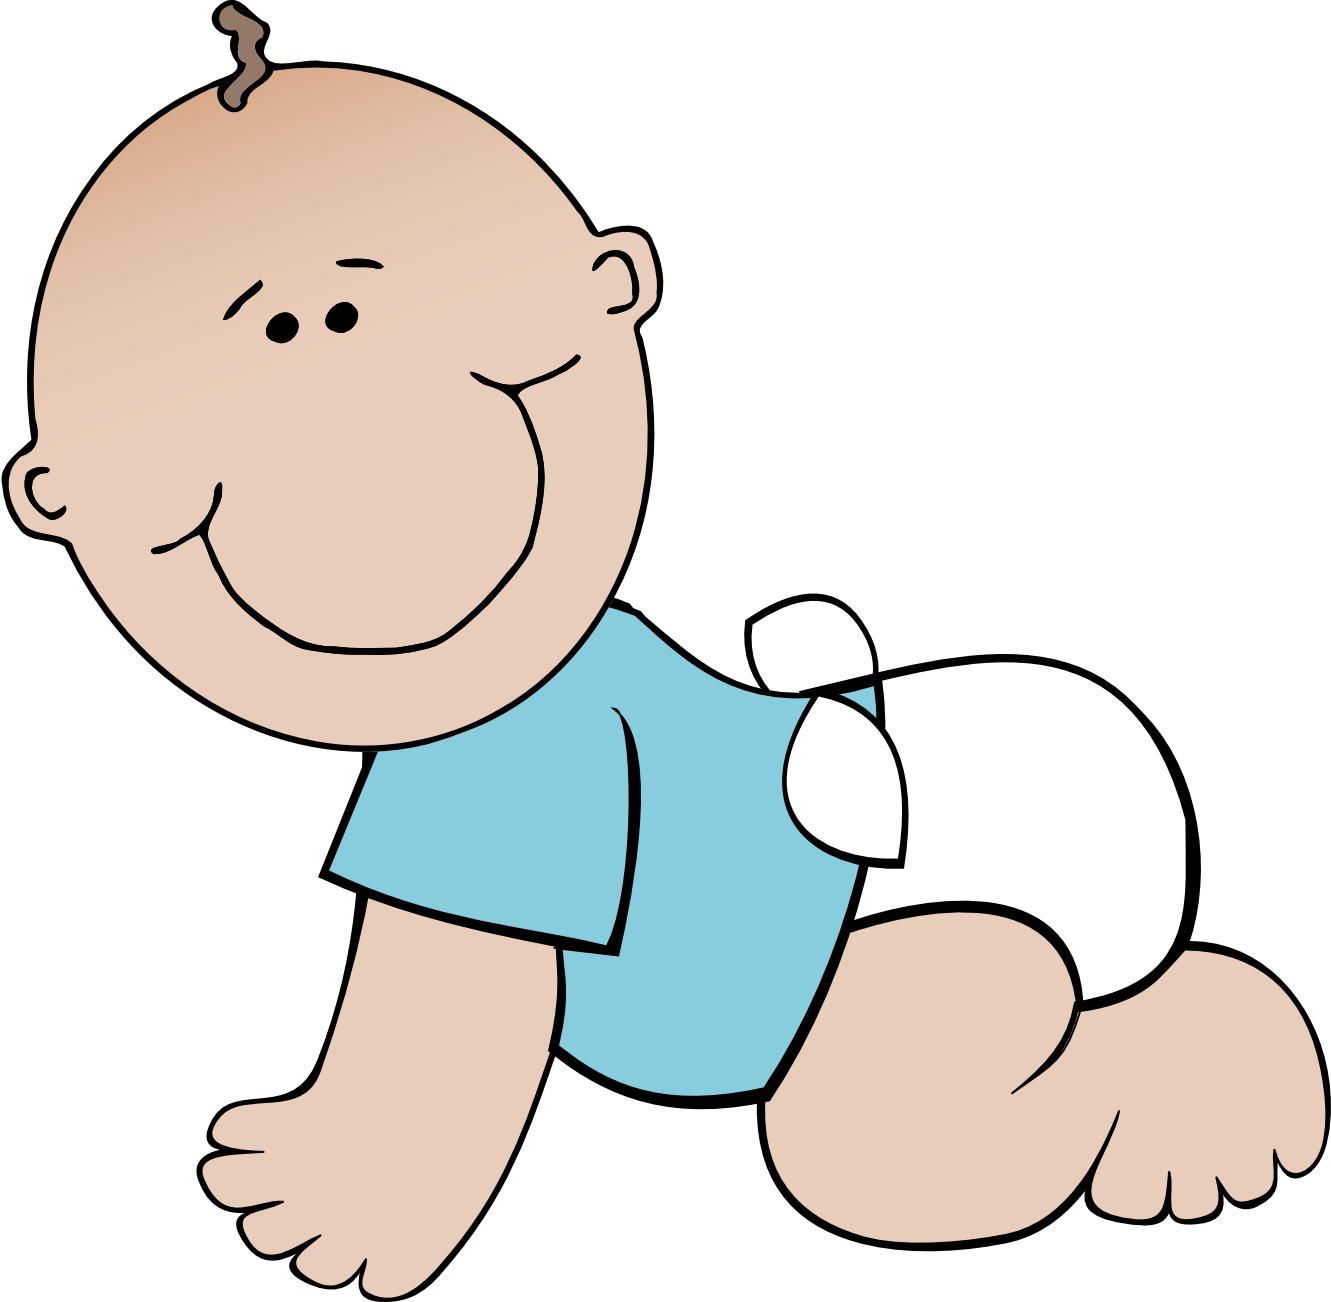 Baby book clipart no background clip art transparent library Free Transparent Diaper Cliparts, Download Free Clip Art, Free Clip ... clip art transparent library